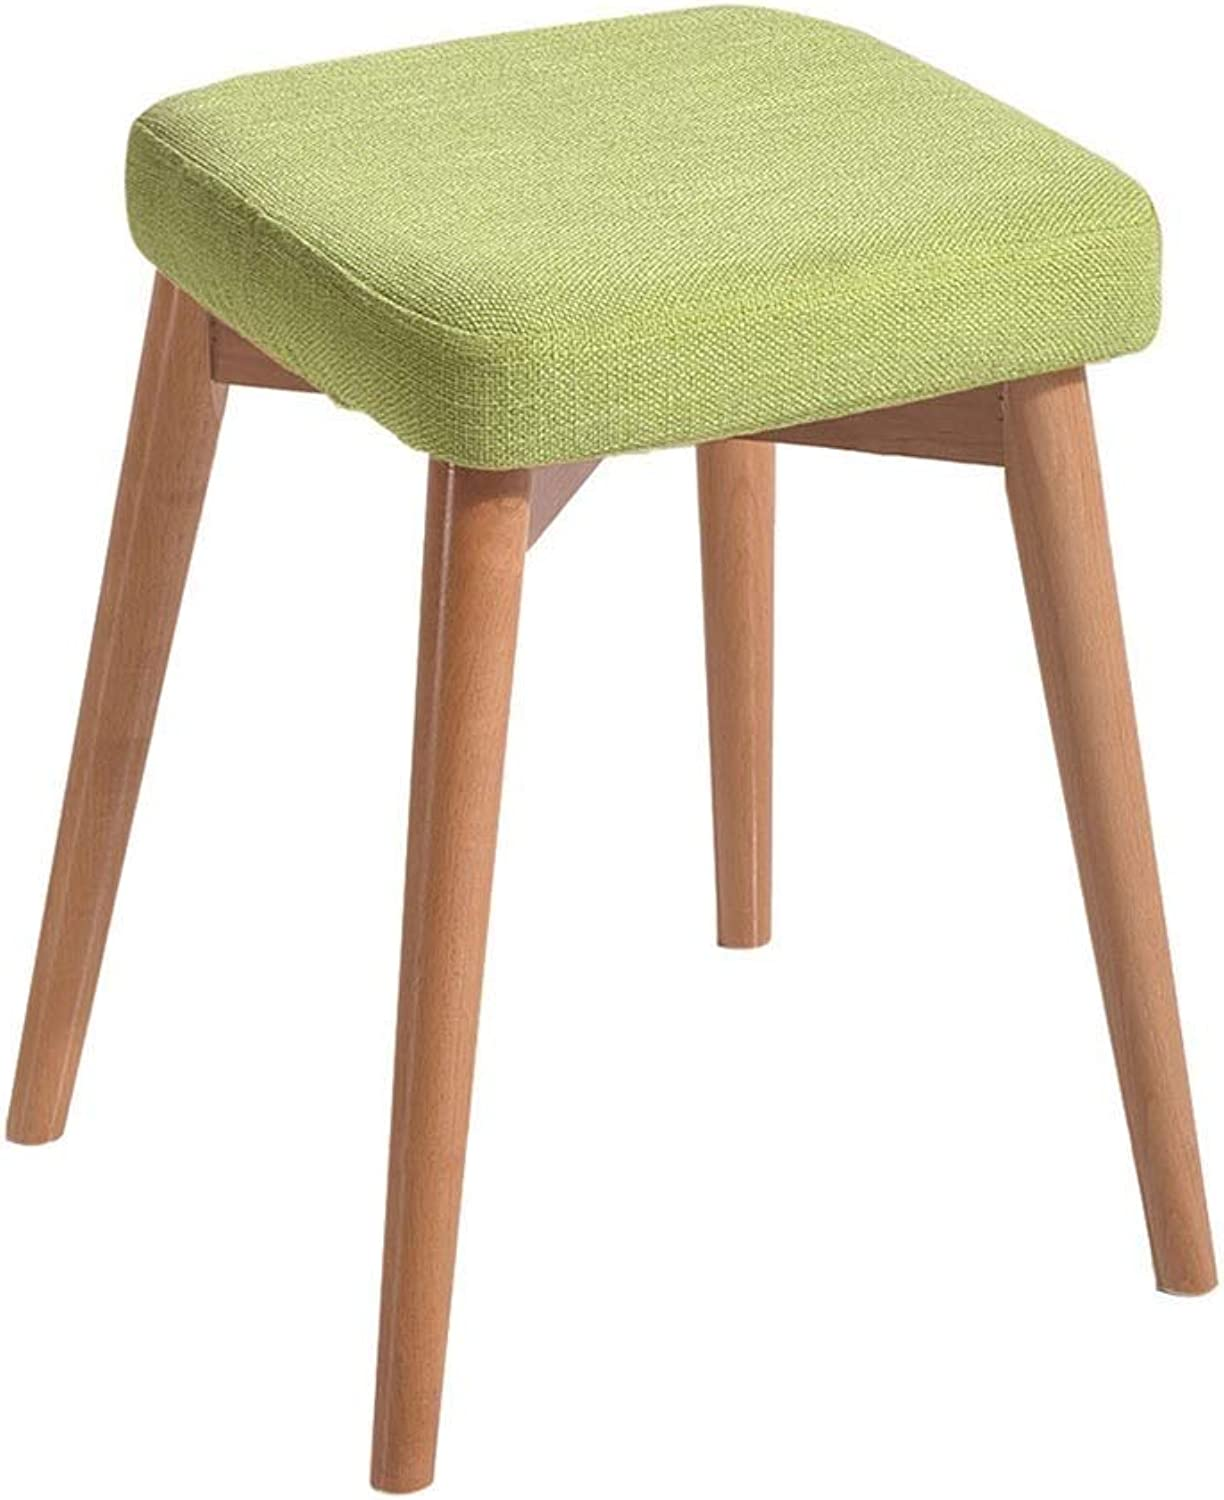 Household Dressing Stool Upholstered Solid Wood Stool Nordic Creative Bench for Living Room Bathroom Kitchen HENGXIAO (color   Green)